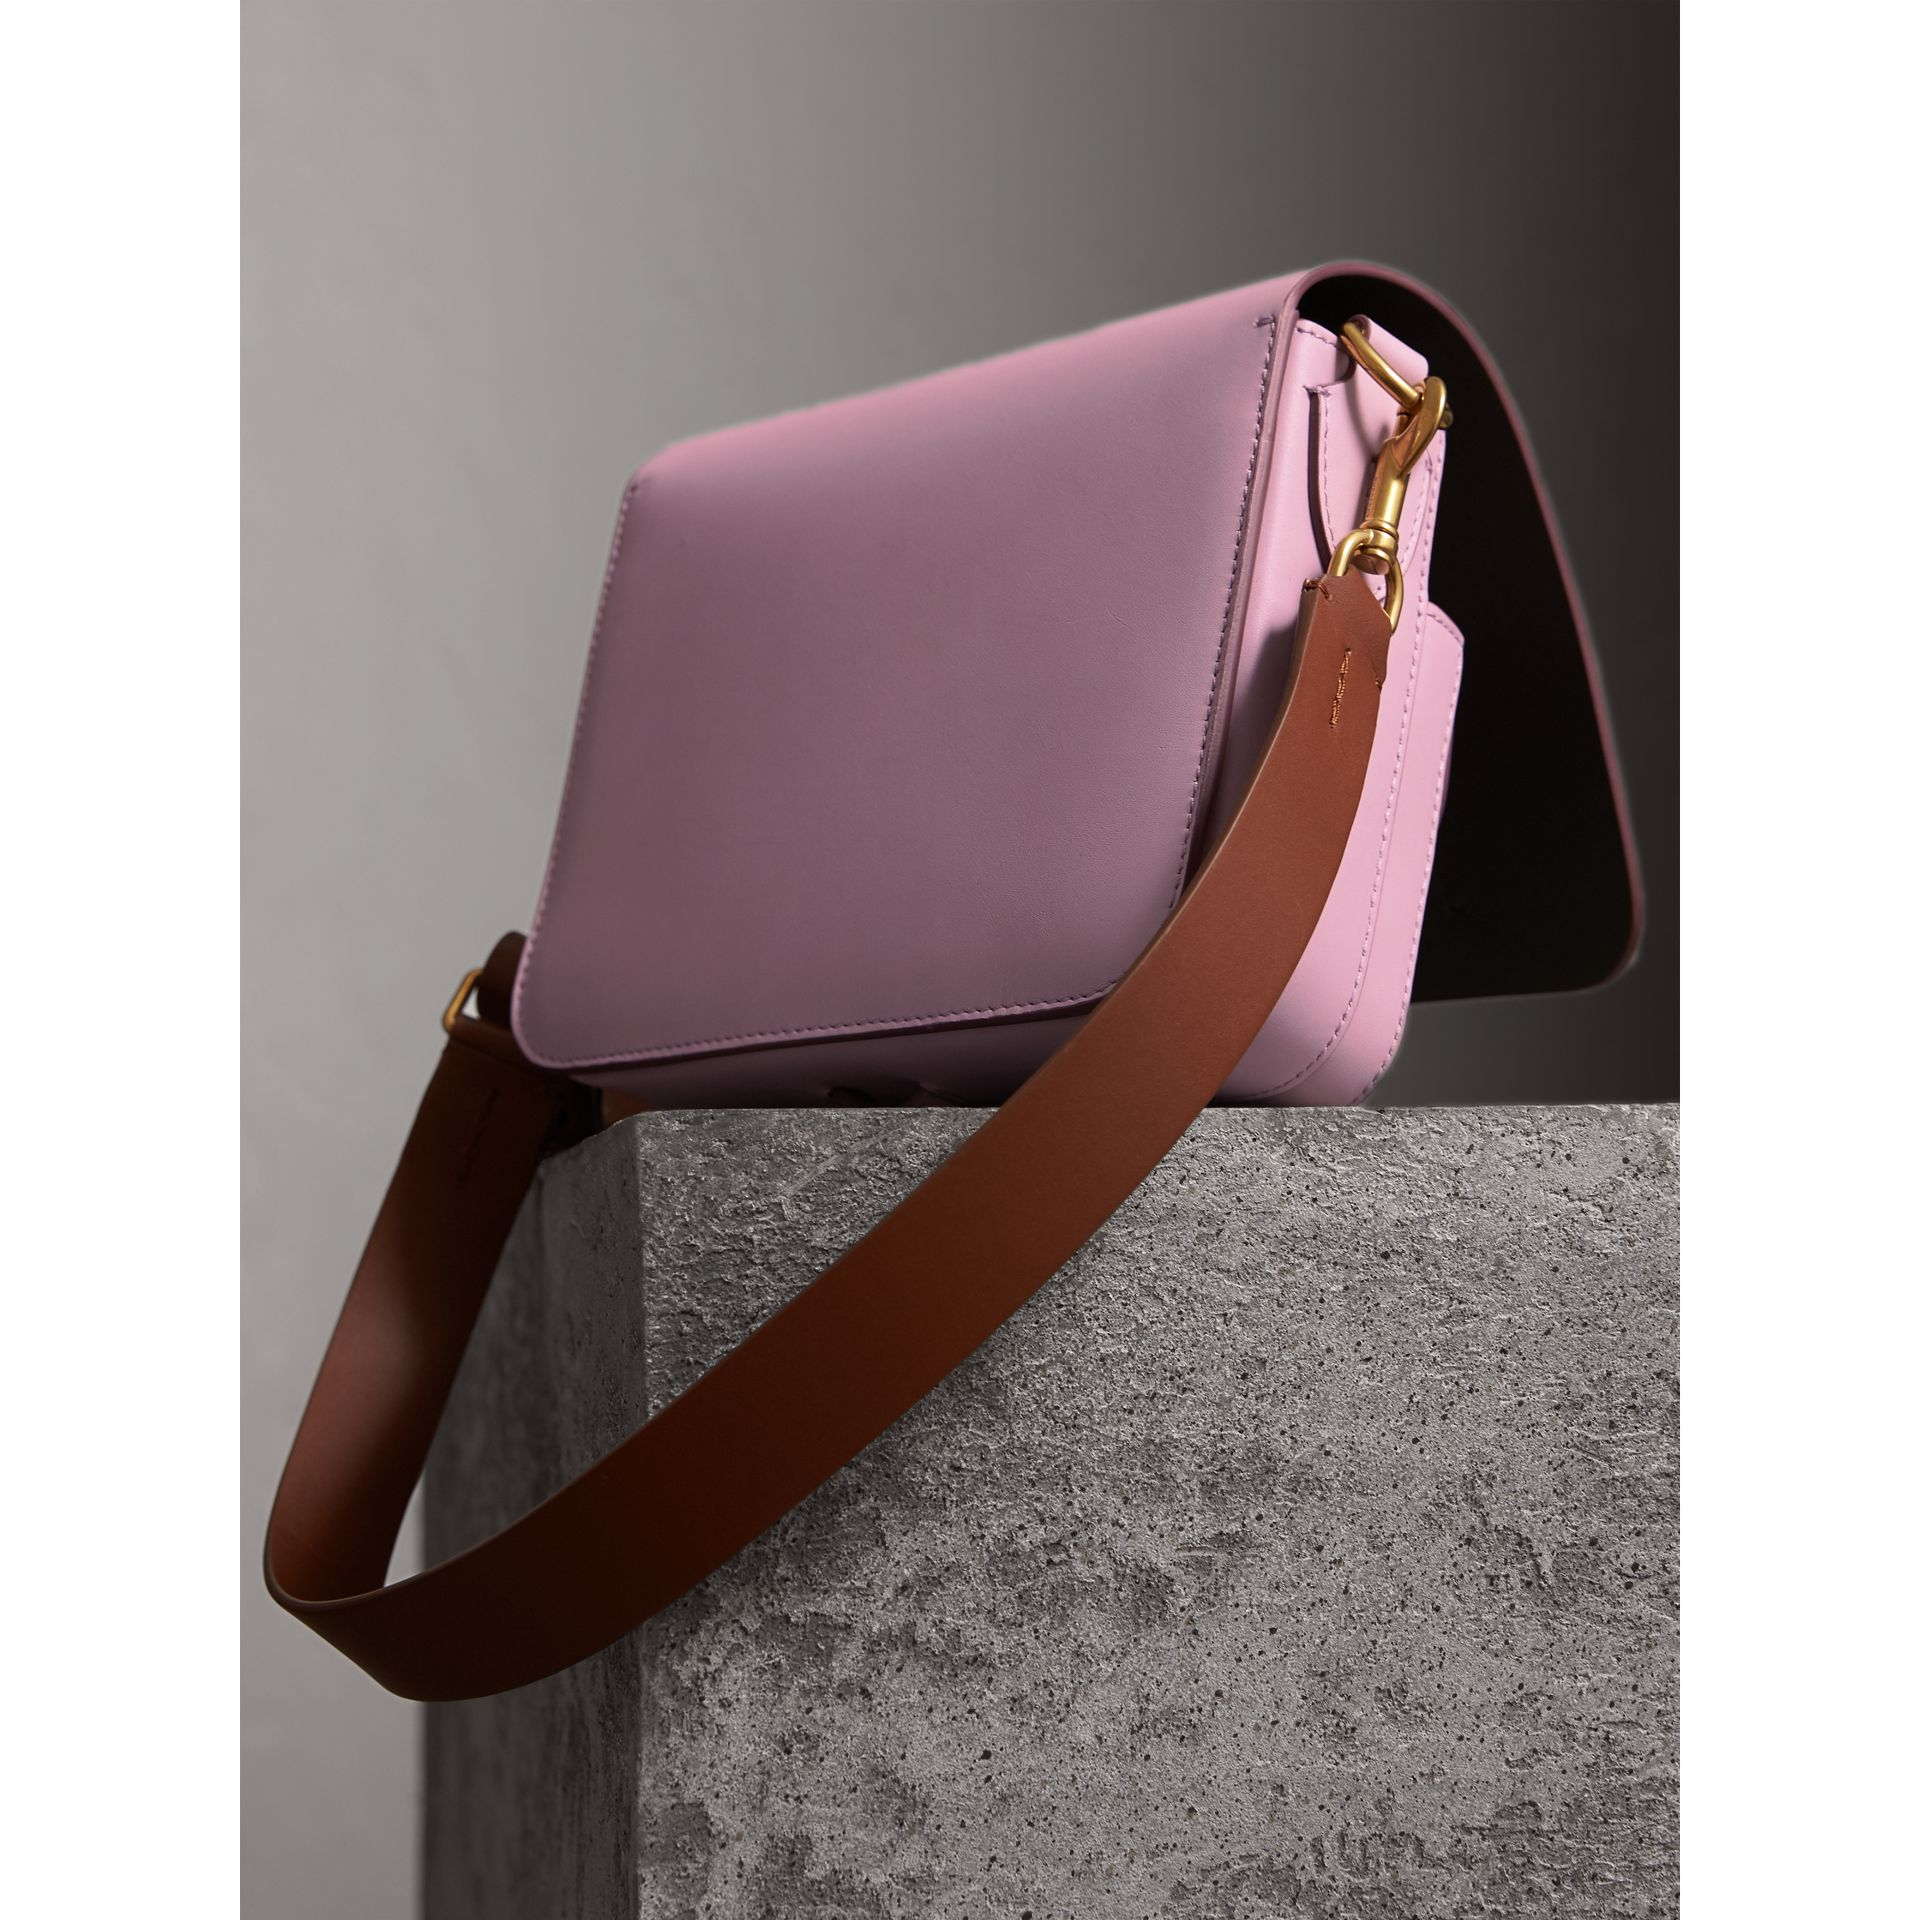 The Square Satchel in Leather in Pale Lavender - Women | Burberry - gallery image 3